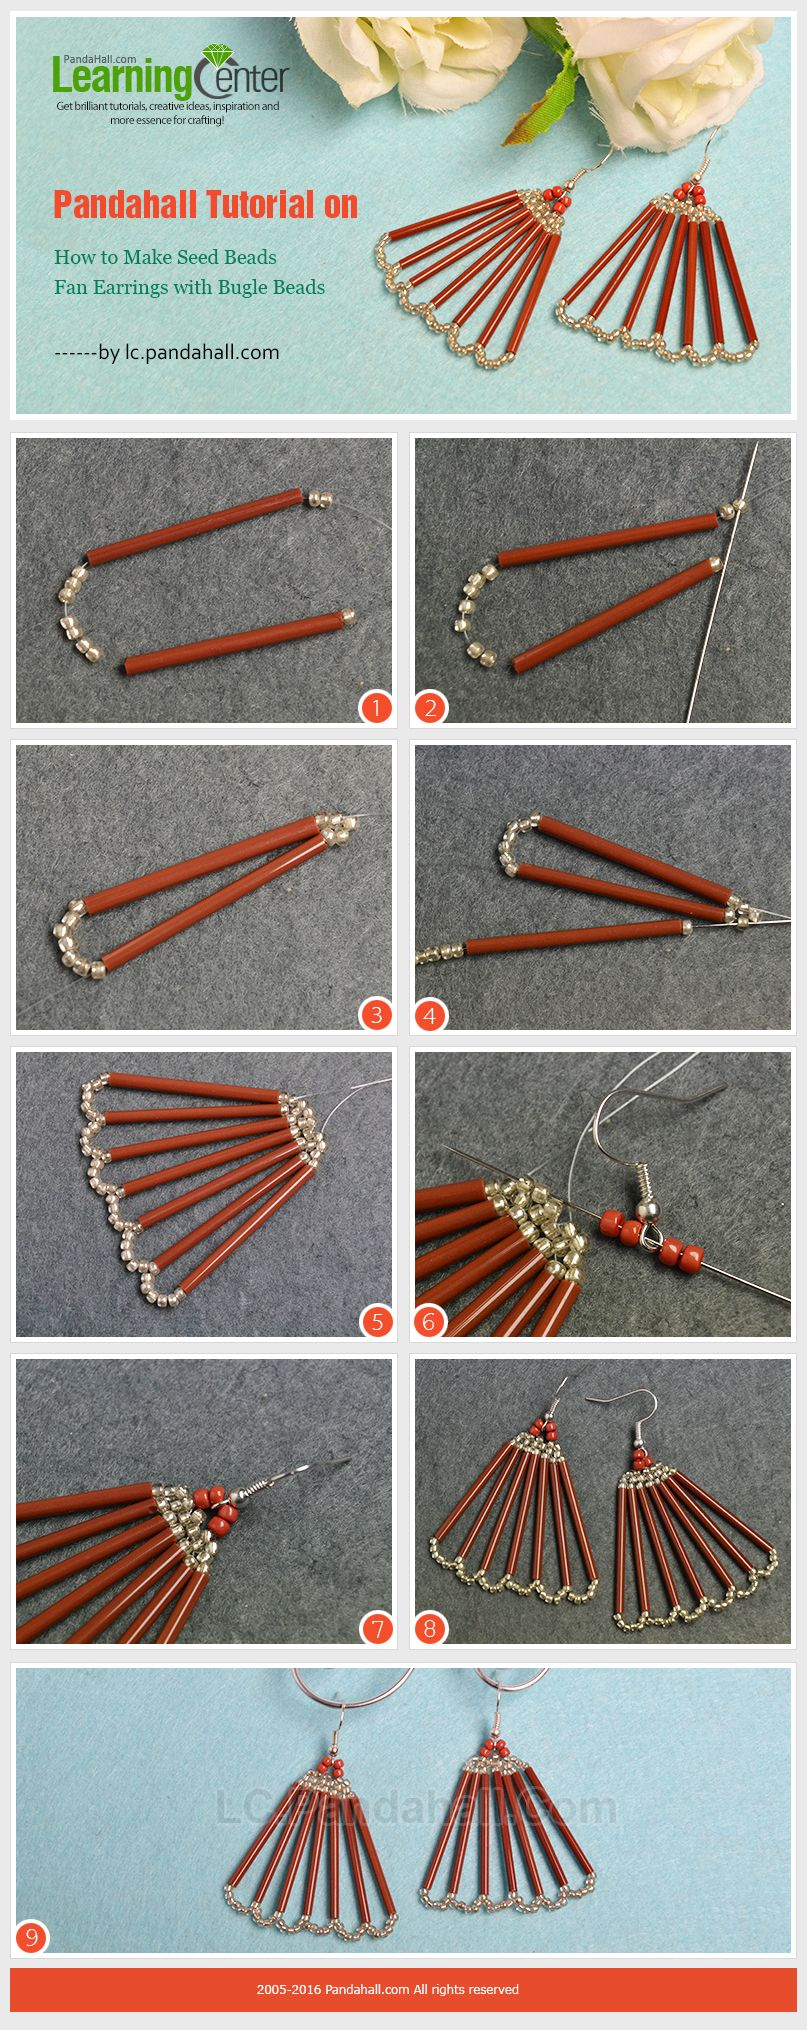 pandahall tutorial on how to make seed beads fan earrings with bugle beads jwewlry making. Black Bedroom Furniture Sets. Home Design Ideas